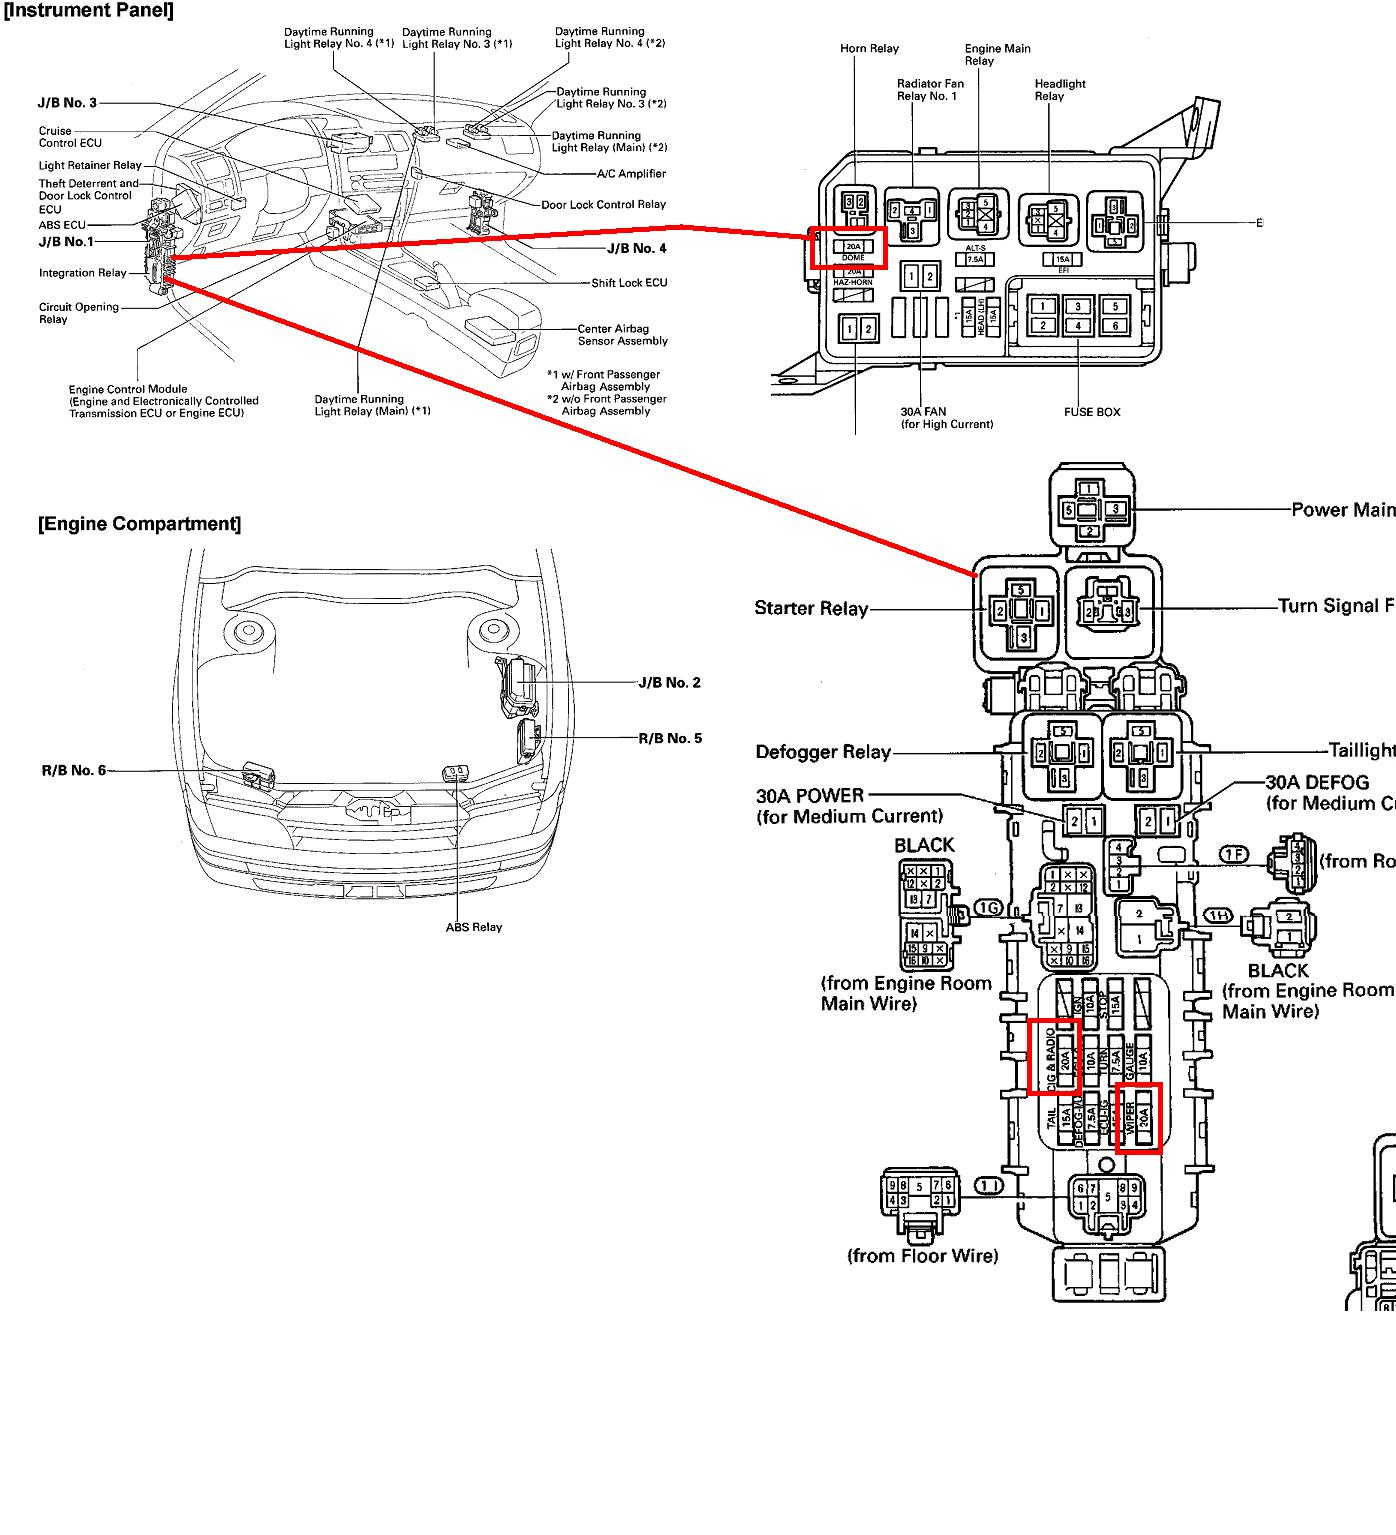 toyota corolla fuse box diagram image wiring 2004 toyota corolla fuse box diagram diagram on 93 toyota corolla fuse box diagram